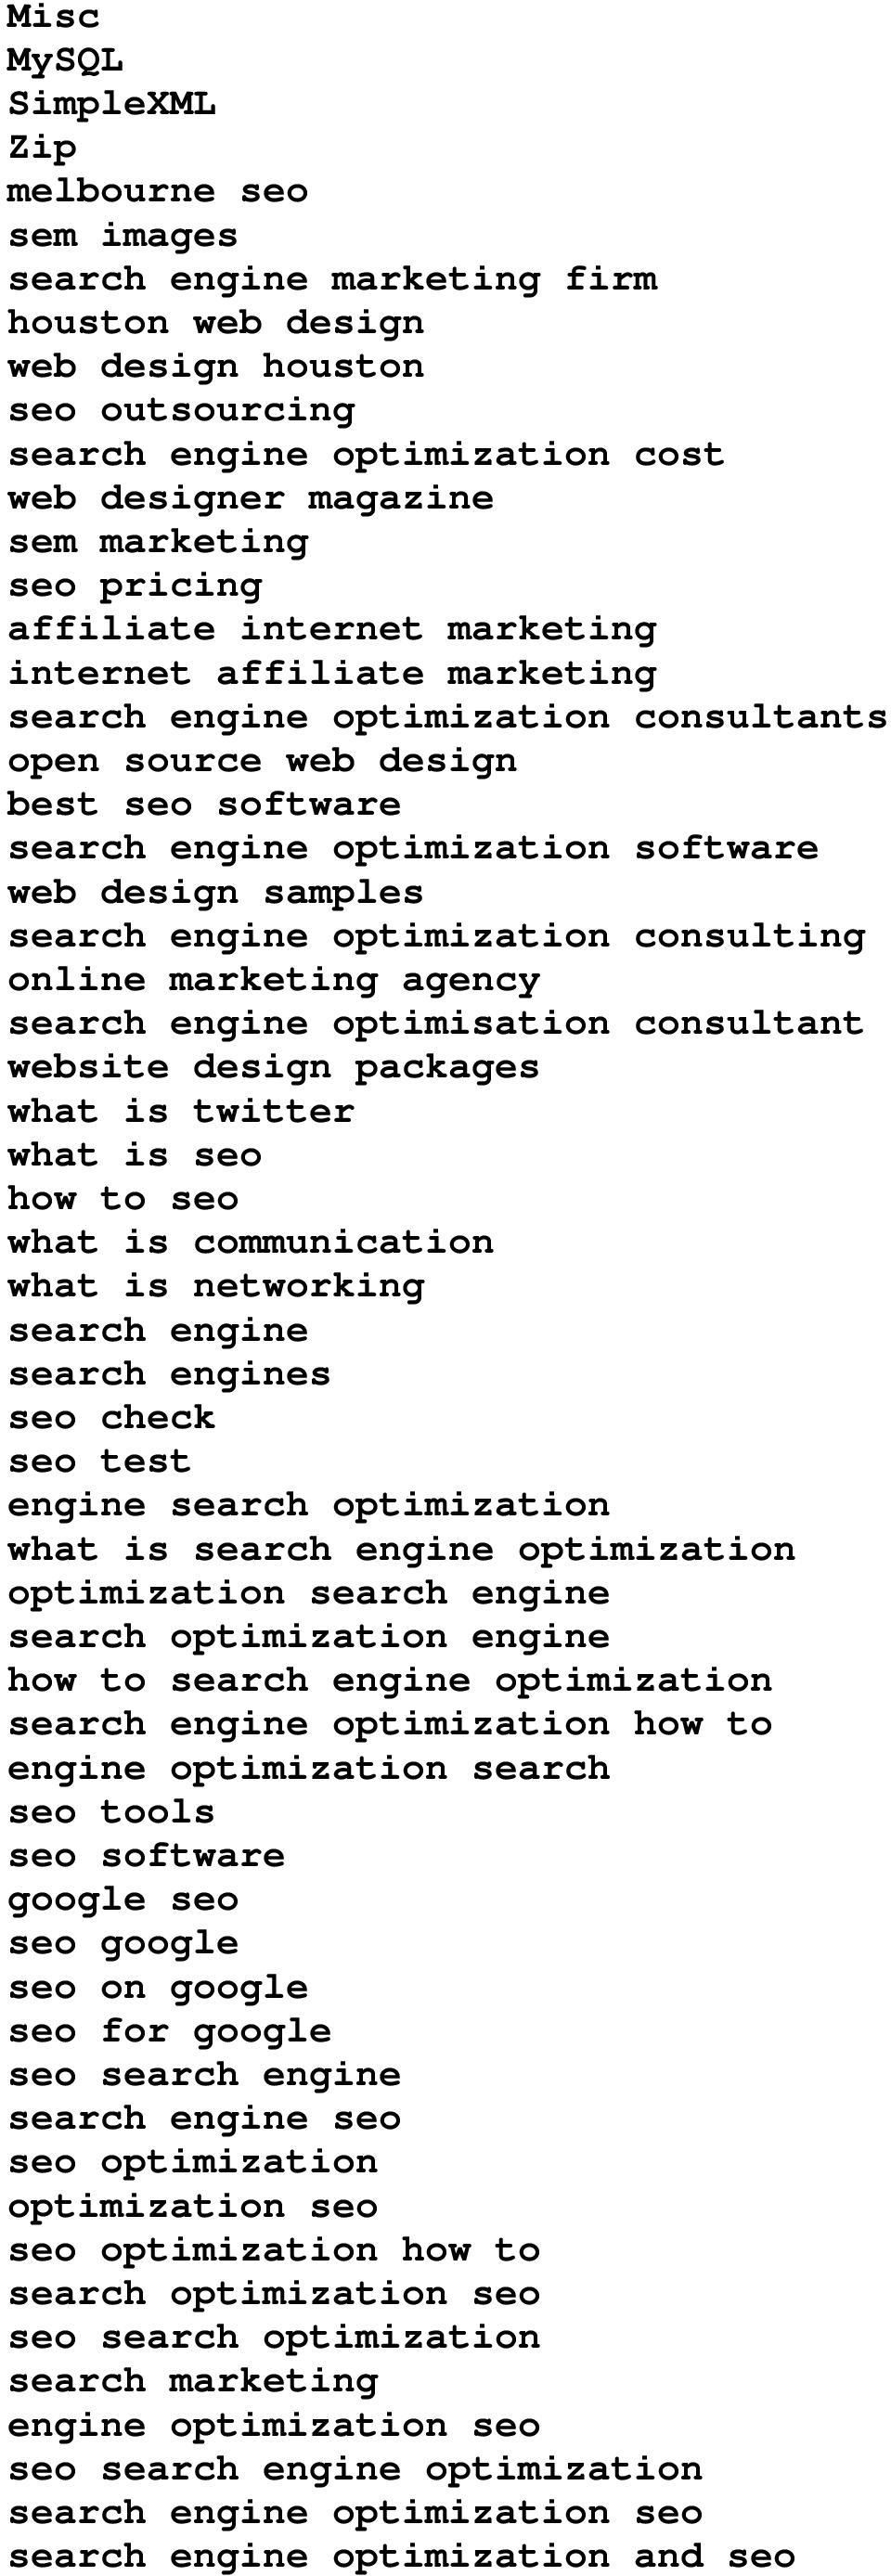 design samples search engine optimization consulting online marketing agency search engine optimisation consultant website design packages what is twitter what is seo how to seo what is communication